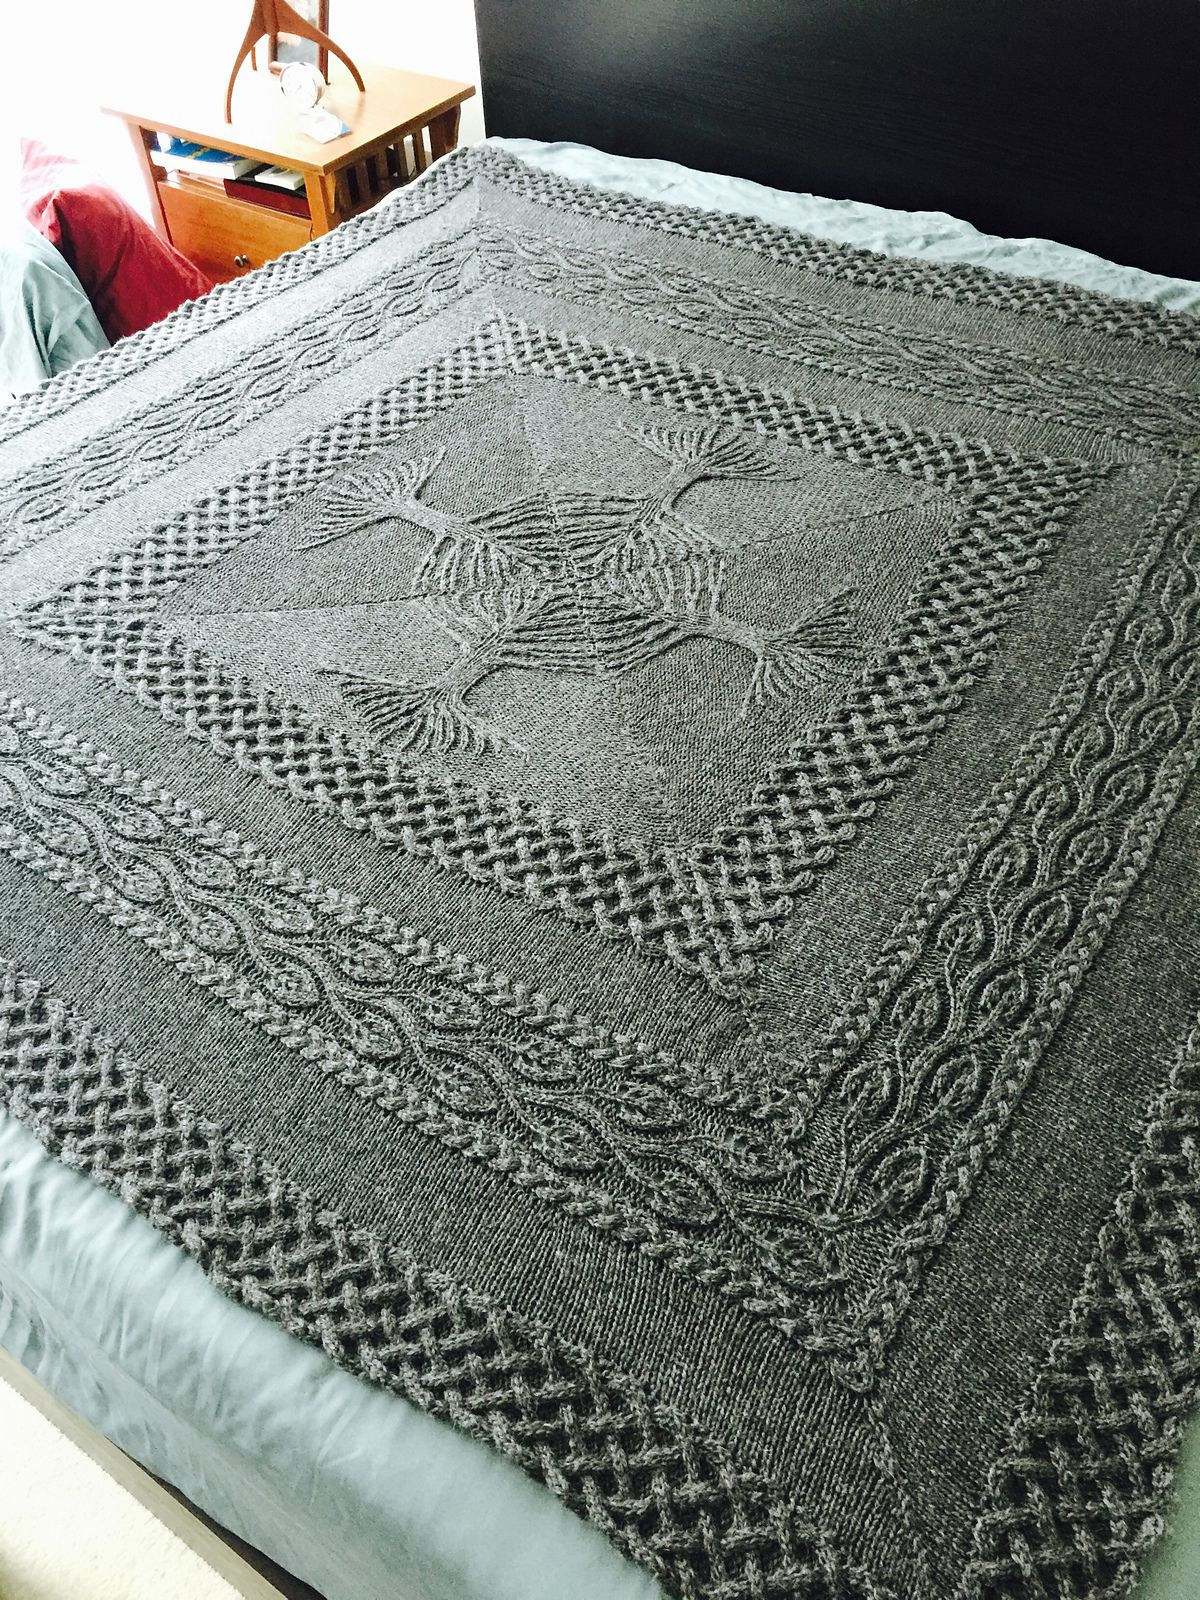 Cable Afghan Knitting Patterns | Norse mythology, Lace patterns and ...